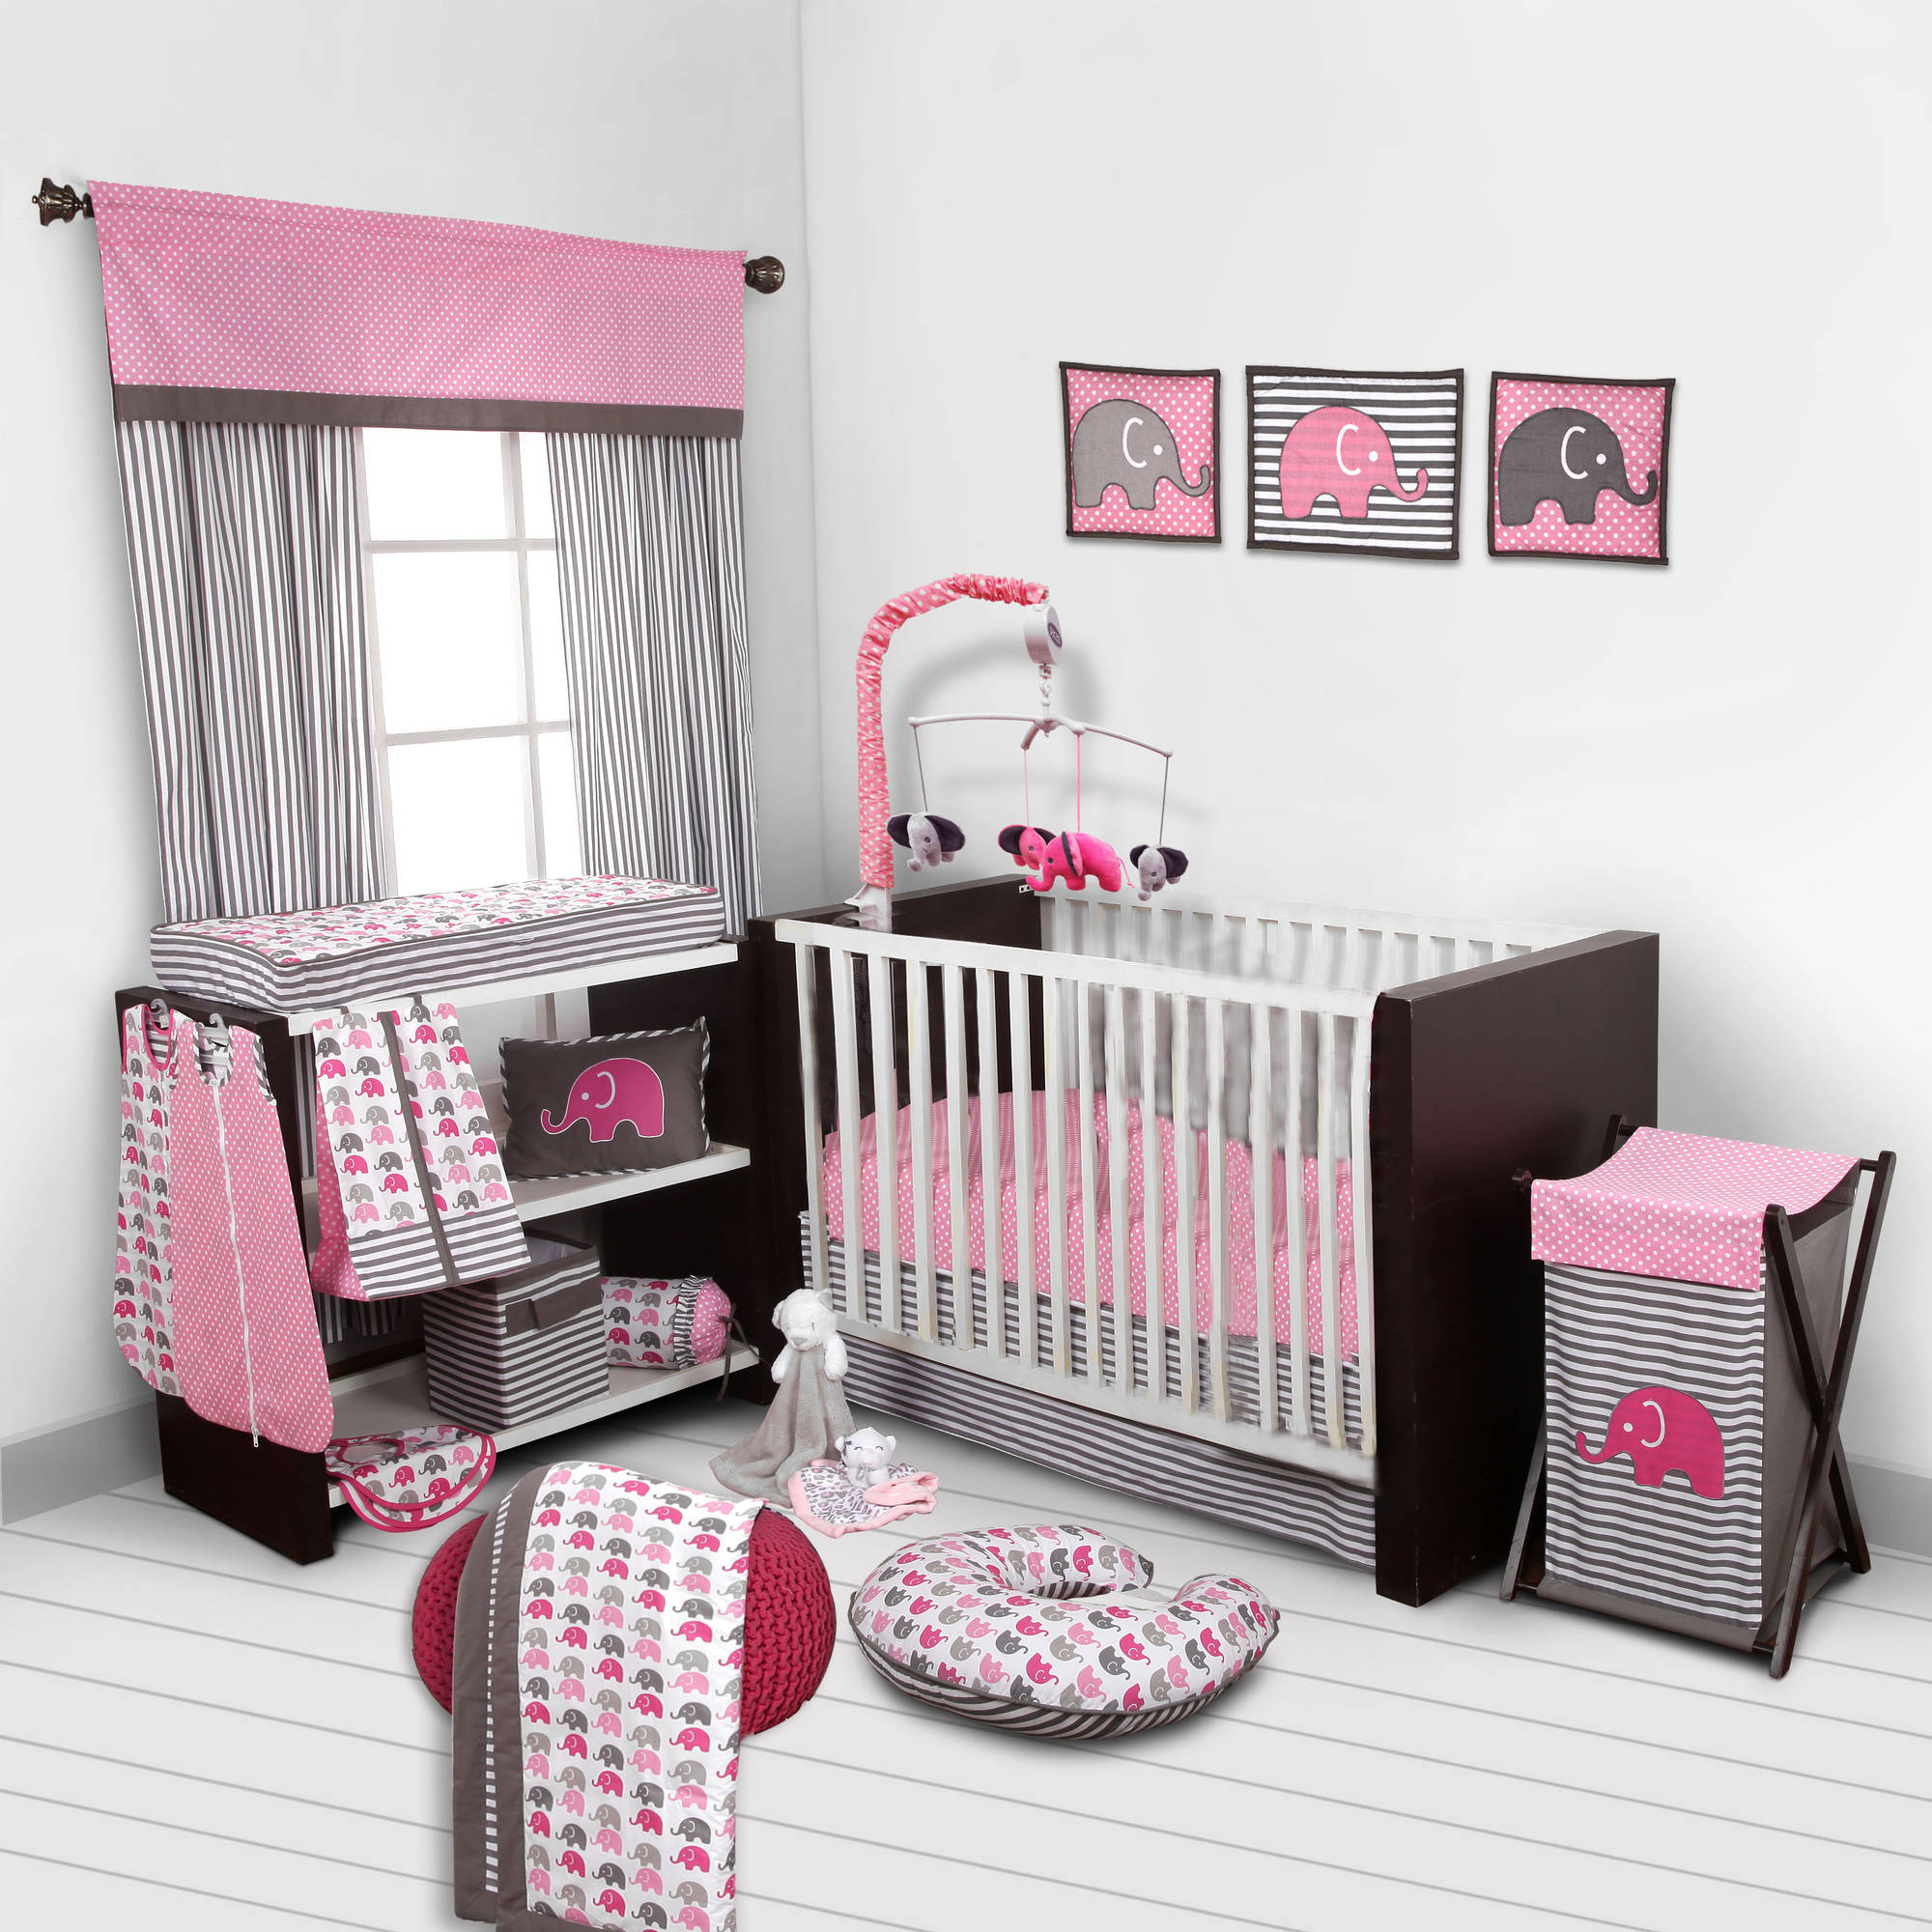 Bacati - Elephants Pink/Gray 10-Piece Nursery in a Bag Crib Bedding Set 100% Cotton Percale Girls Crib Bedding Set with 2 crib fitted sheets